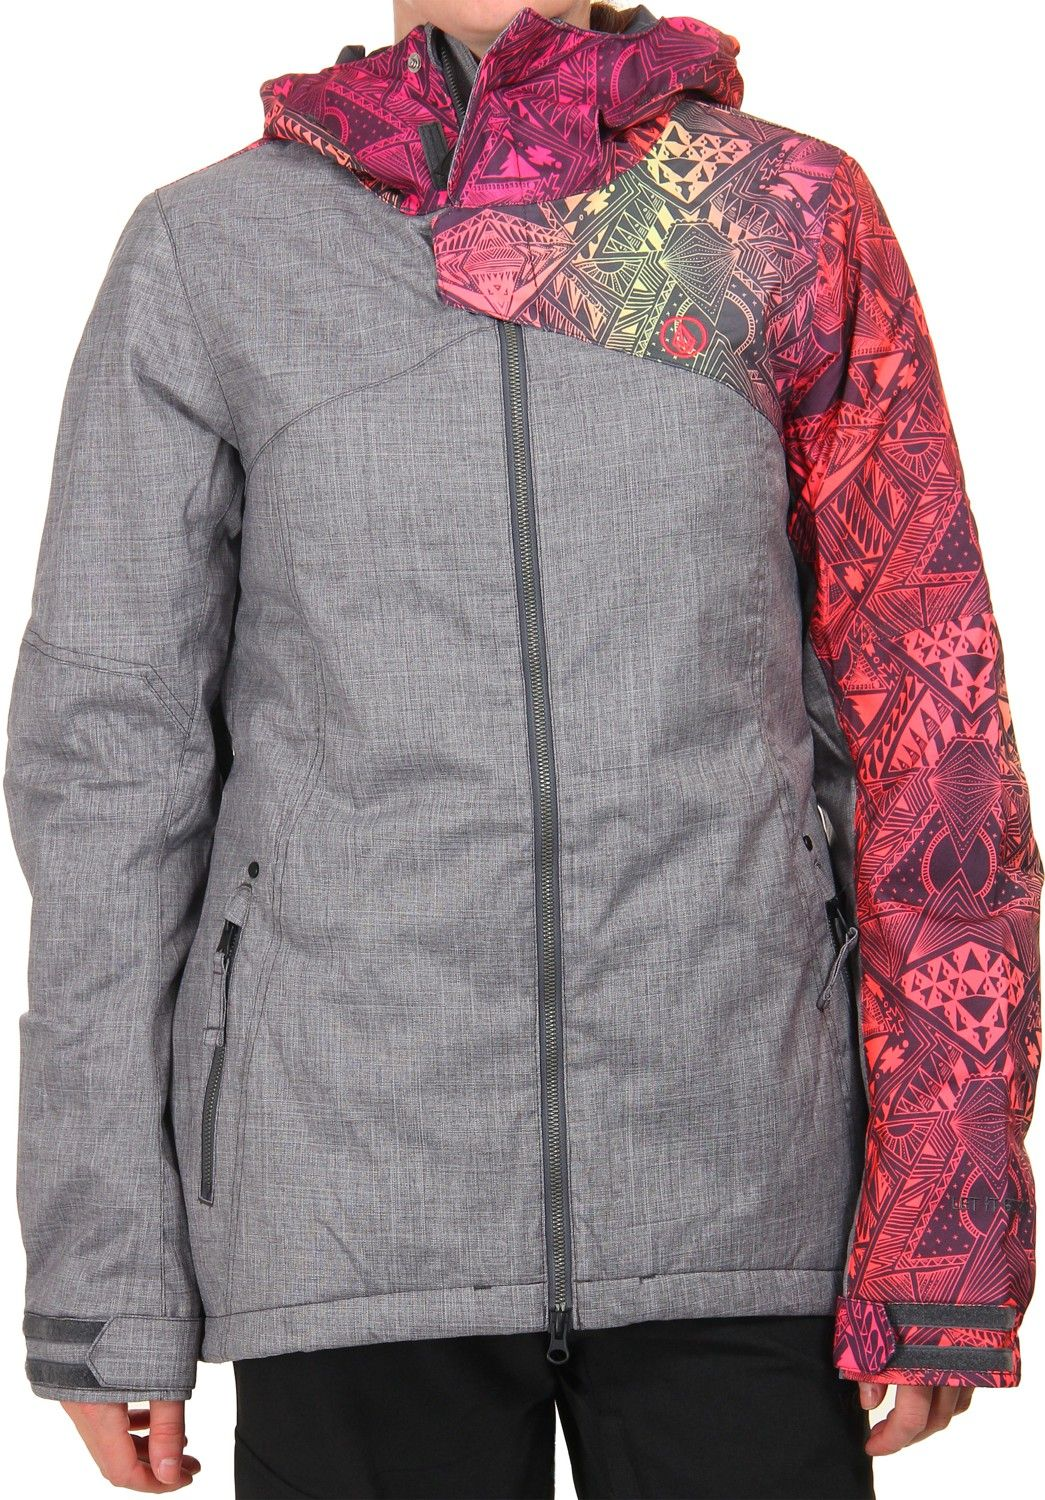 Brushed Nickel Love This Jacket Snowboarding Gear